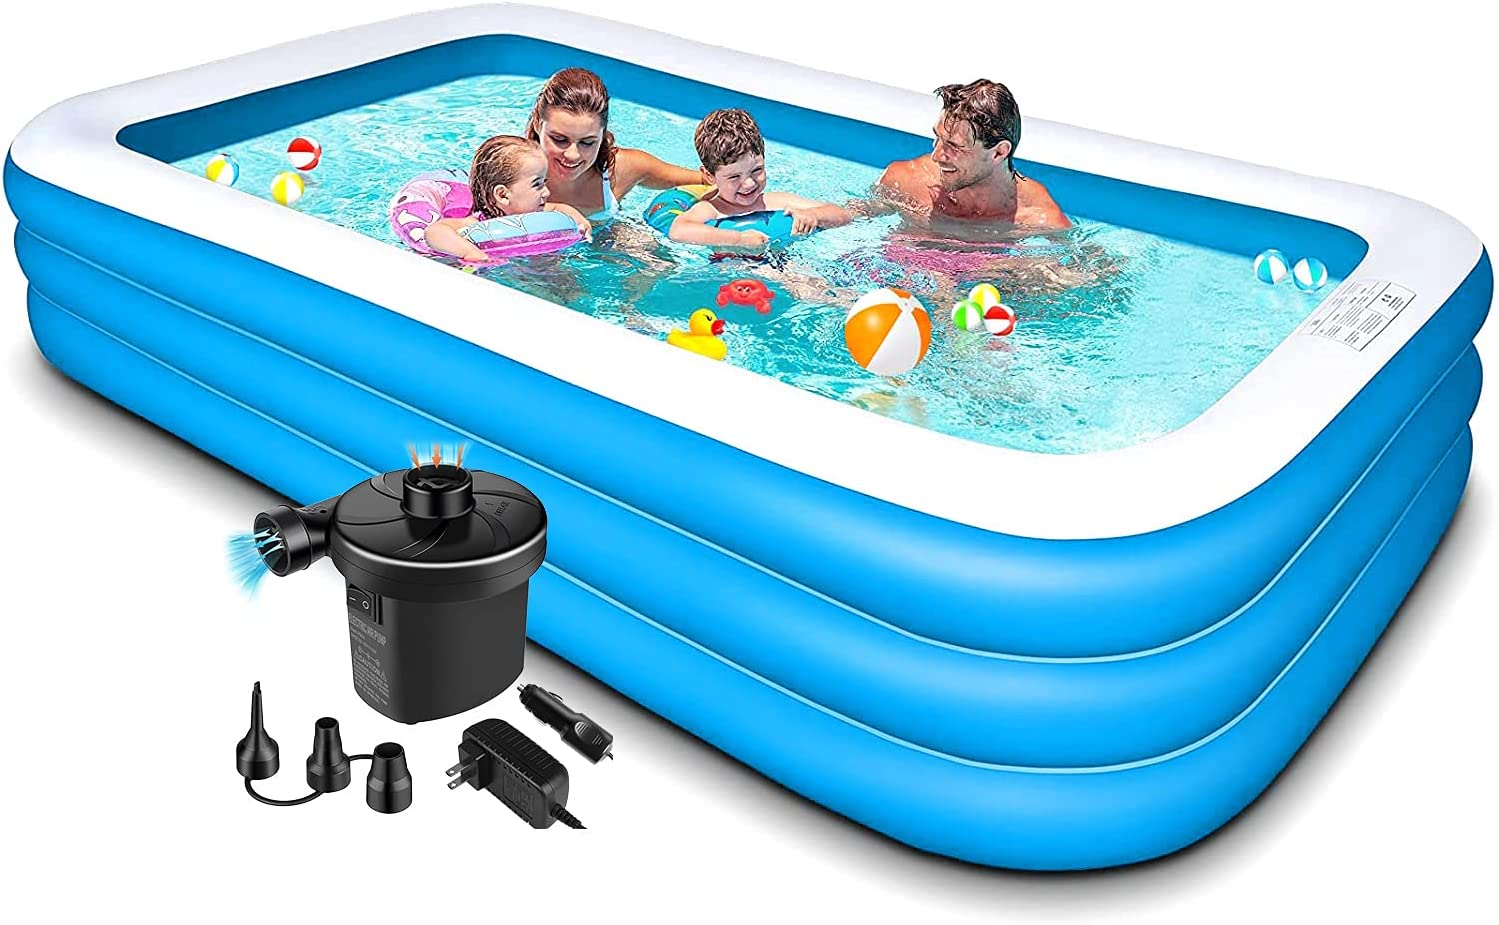 Swimming Pool For Kids And Adults 120x72x22in Kiddie Pool With Pump Piscinas Para Adultos Blow Up Pool Inflatable Pool Kids Pools For Backyard Toddlers Family Outdoor Garden Kitchen Dining